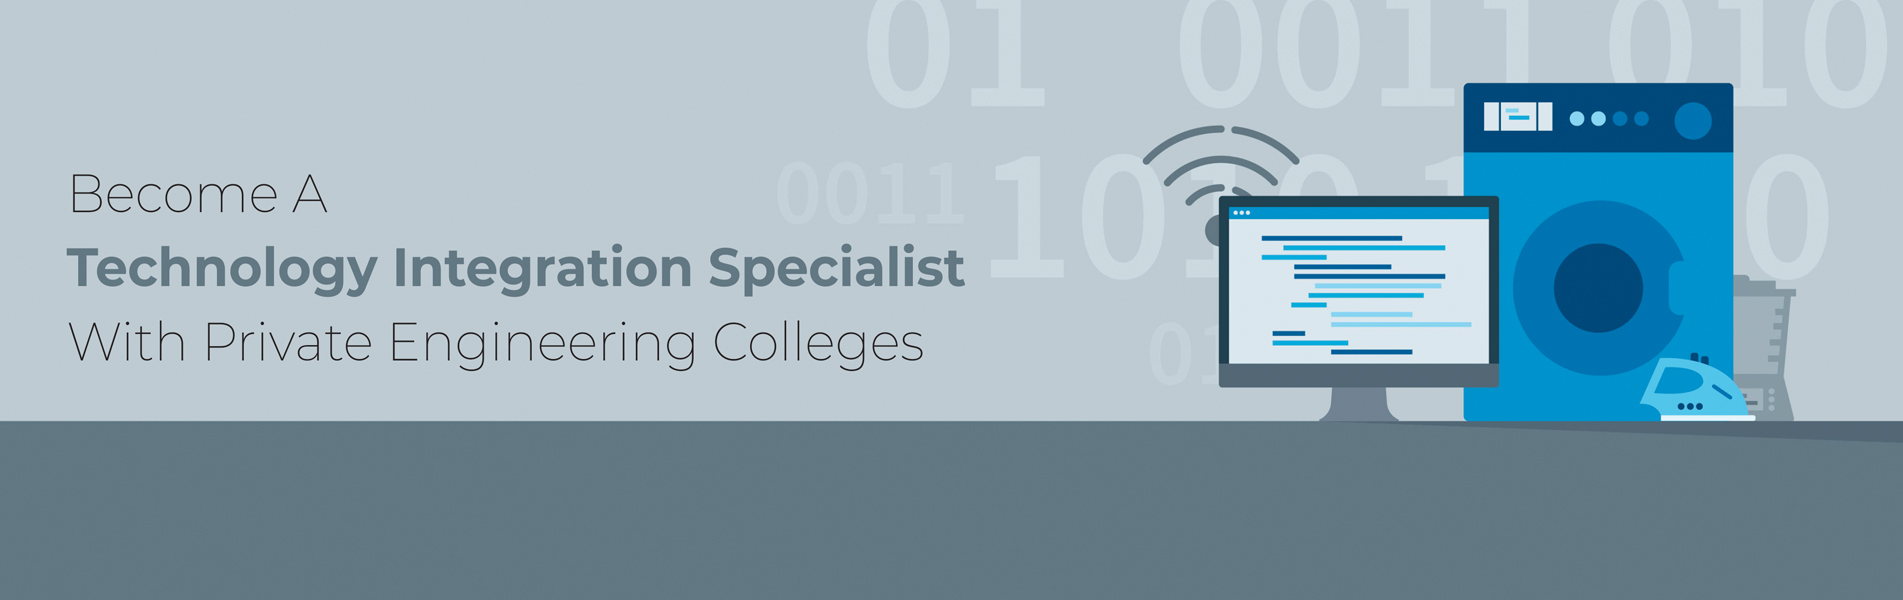 Become-a-technology-integration-specialist-with-Private-Engineering-Colleges